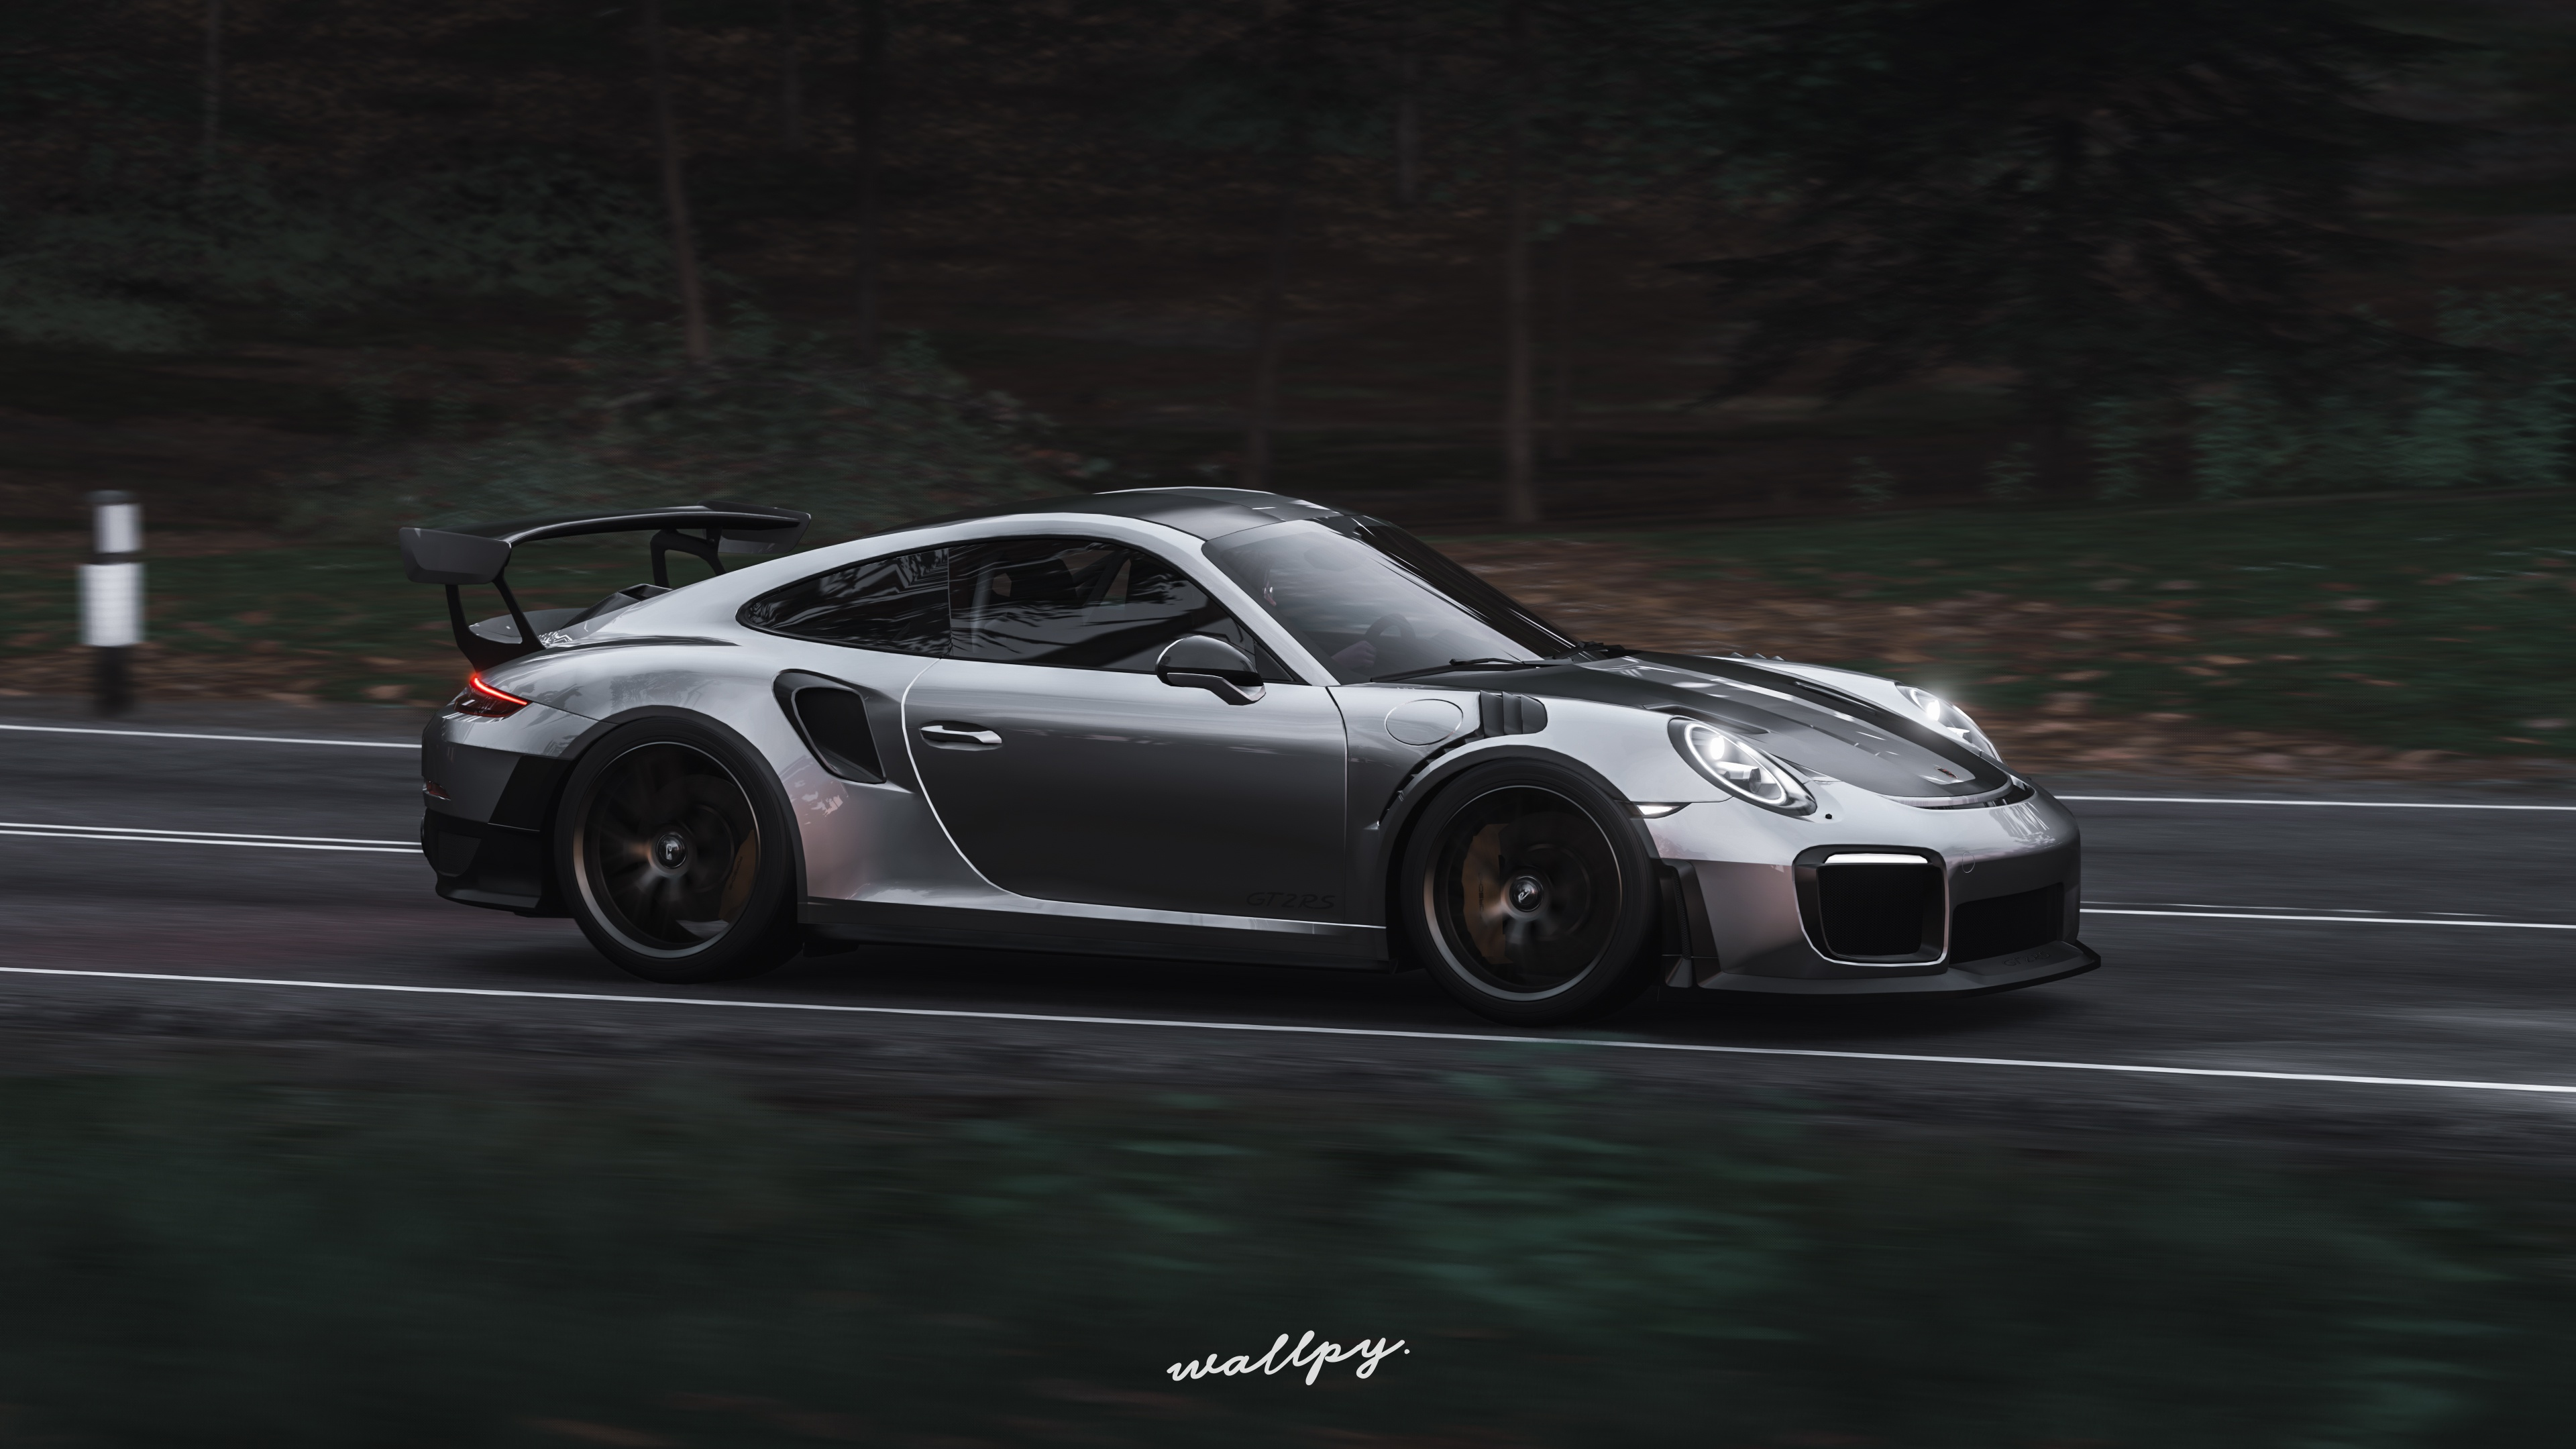 Pictures Forza Horizon 4 Porsche 911 Gt2 Rs By Wallpy 3d 3840x2160